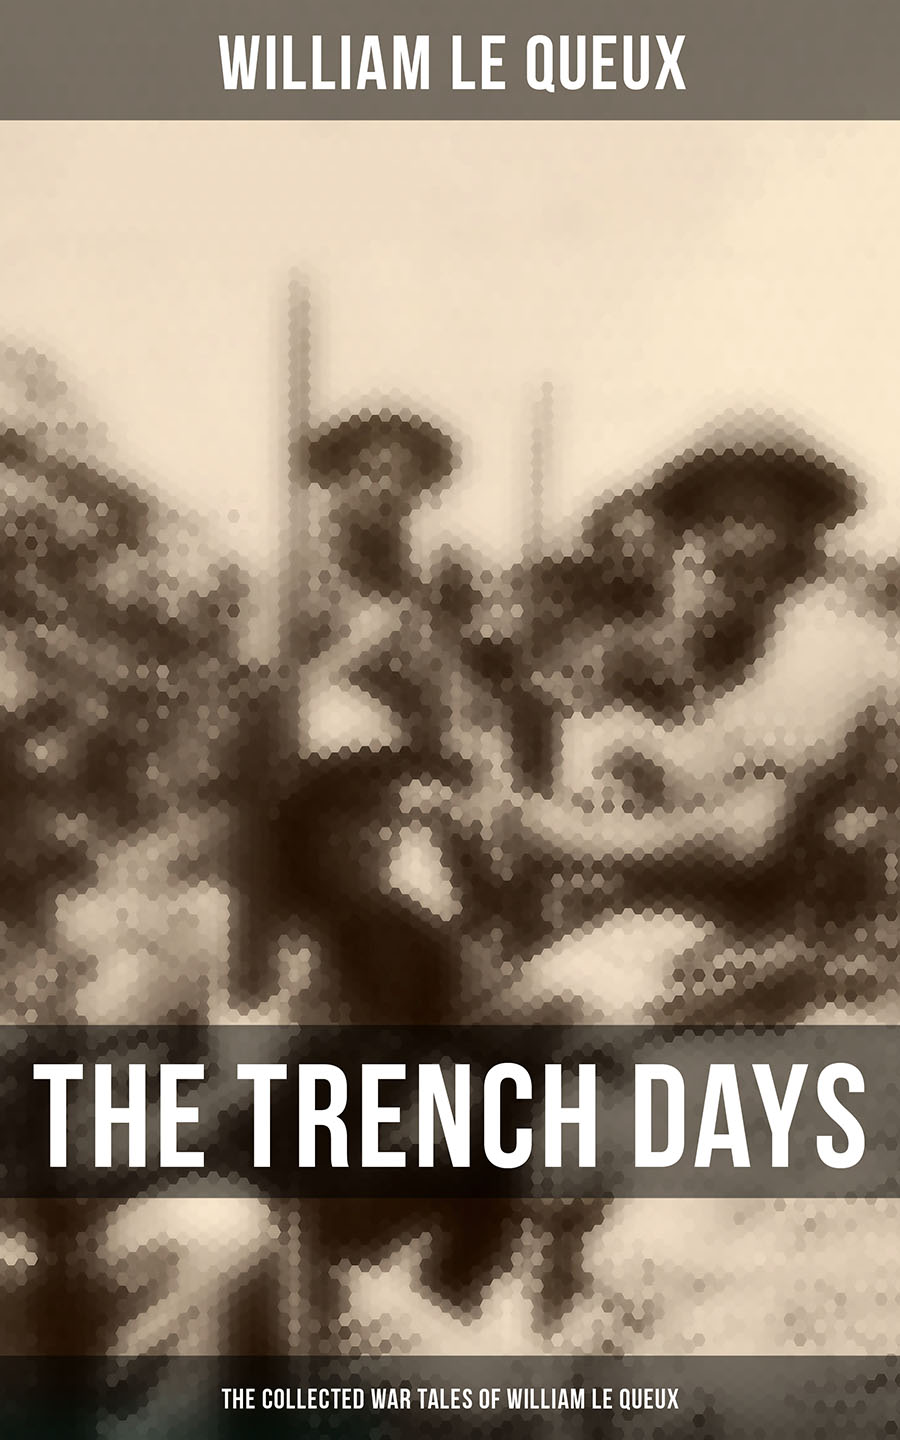 цена на William Le Queux THE TRENCH DAYS: The Collected War Tales of William Le Queux (WW1 Adventure Sagas, Espionage Thrillers & Action Classics)